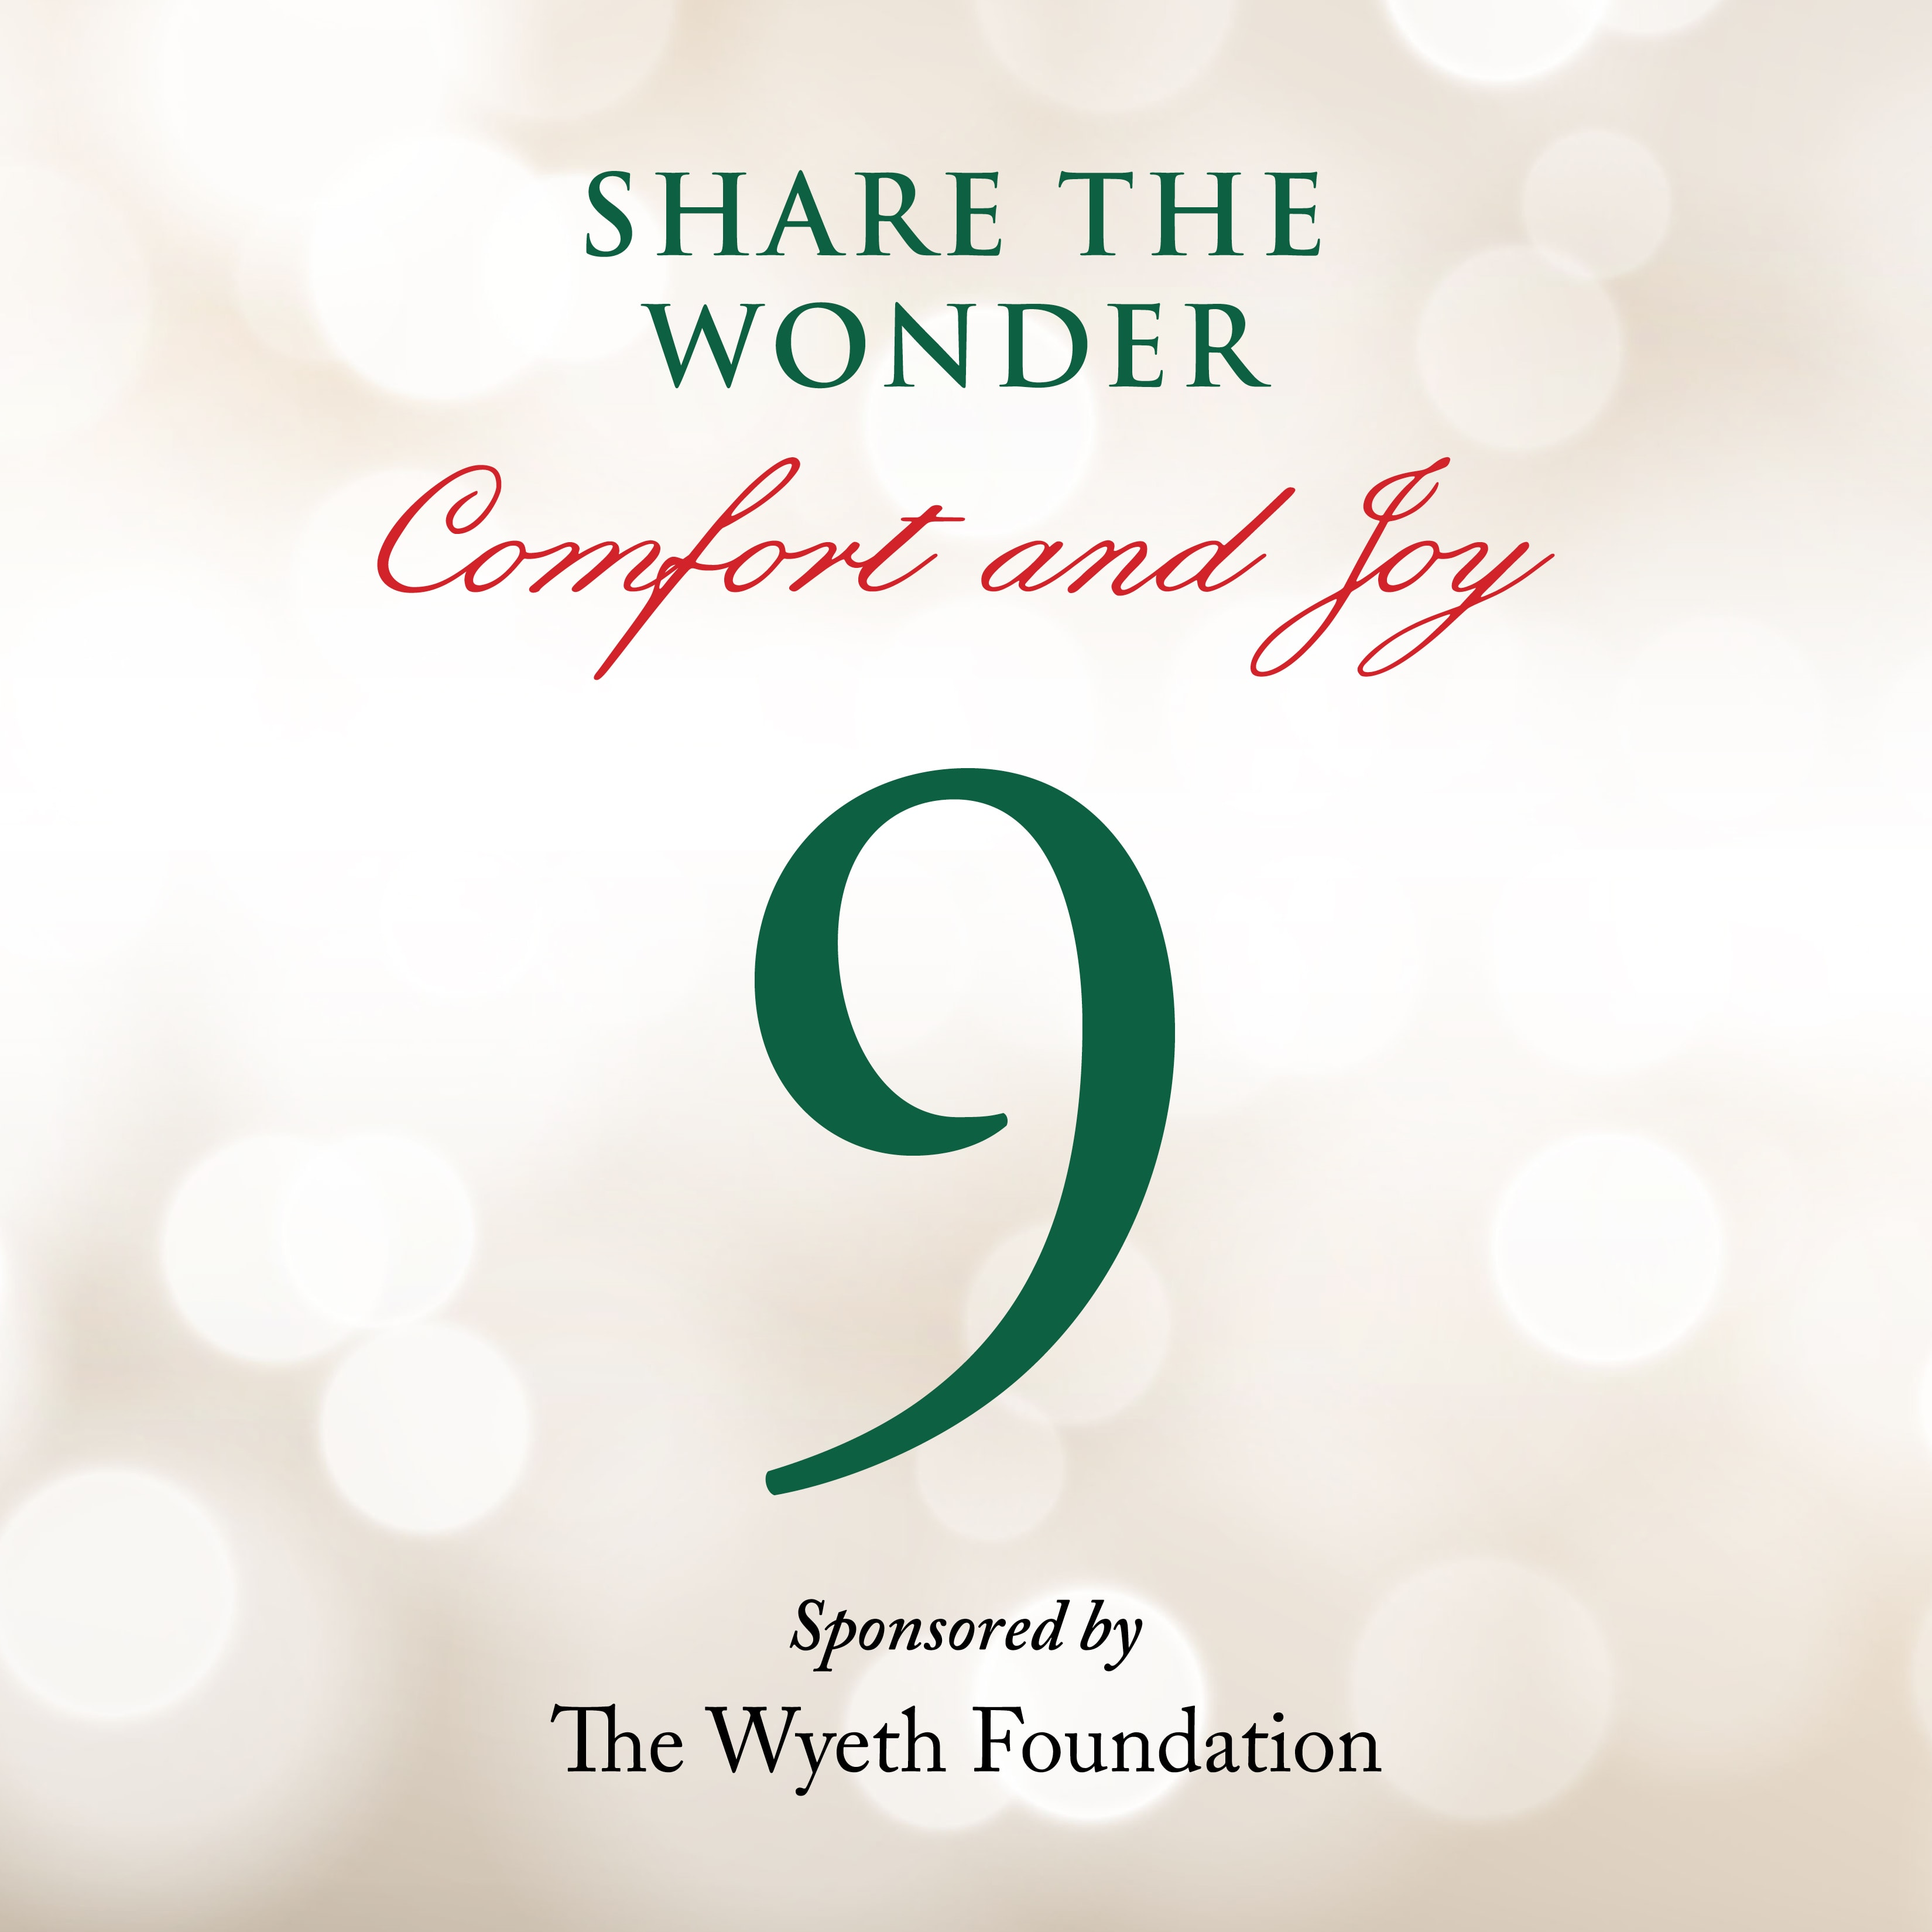 Day 9 of Share the Wonder: December 6